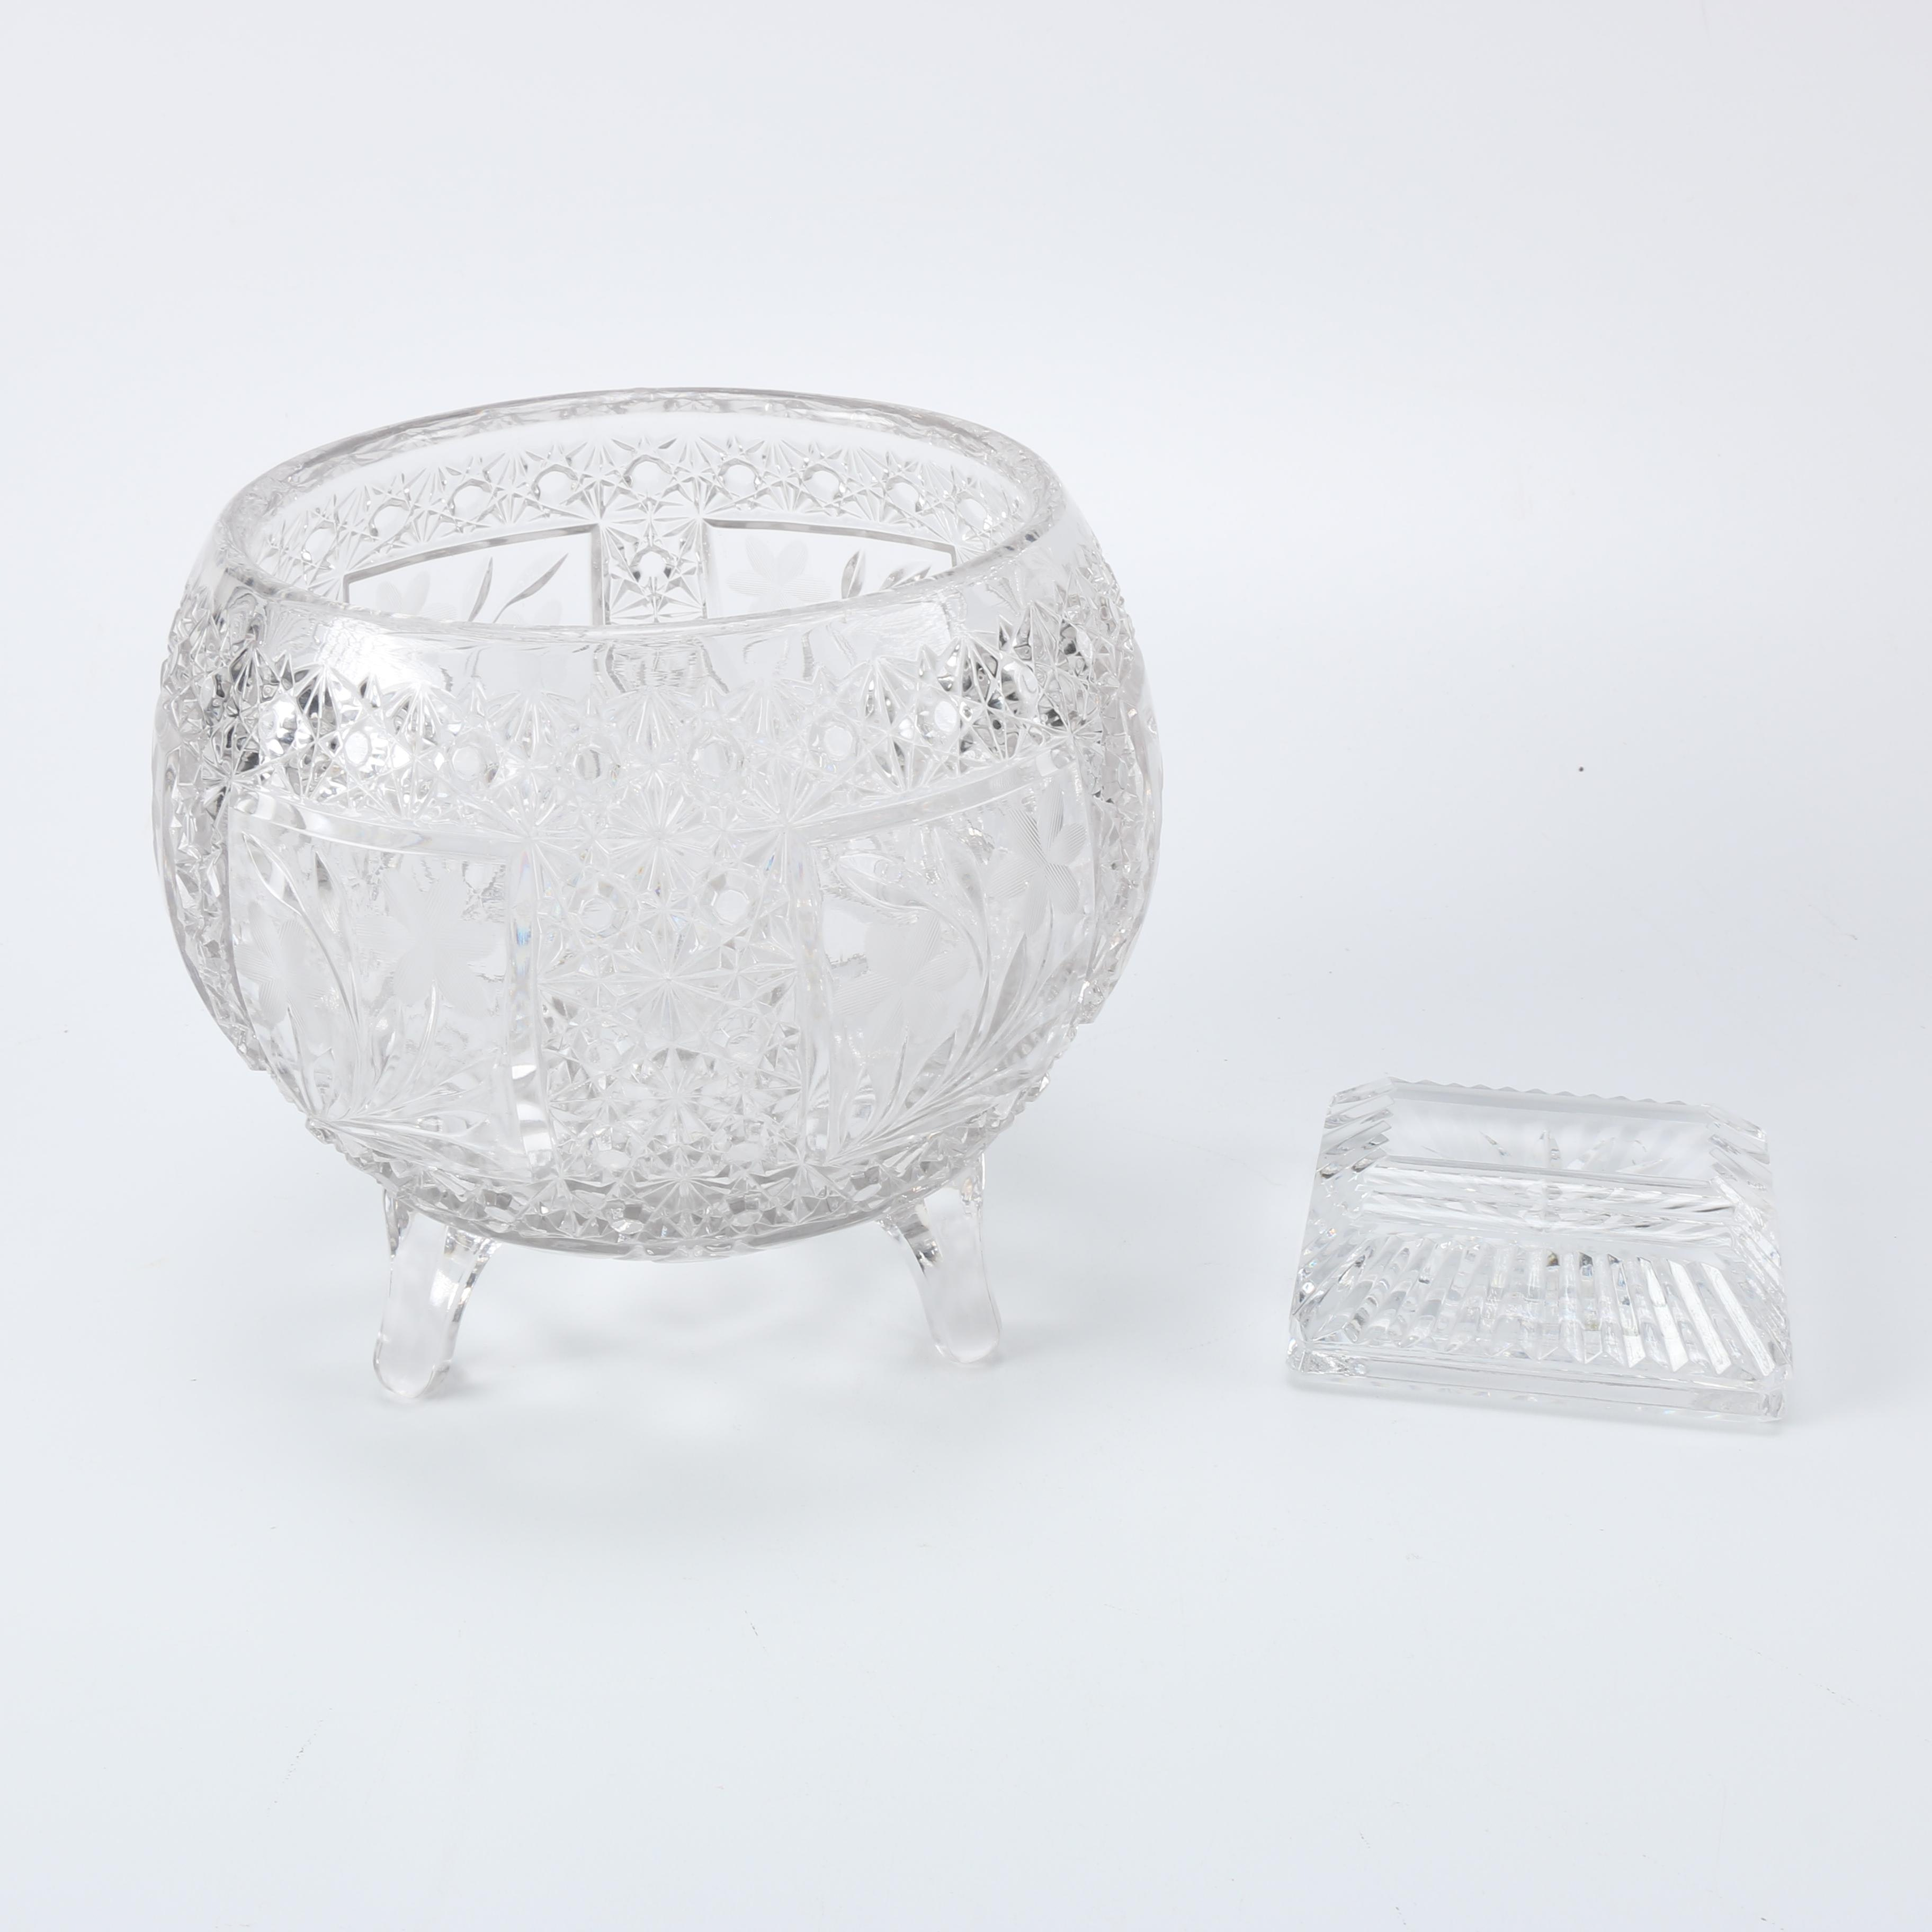 Brilliant Cut Glass Footed Bowl and Crystal Card Holder